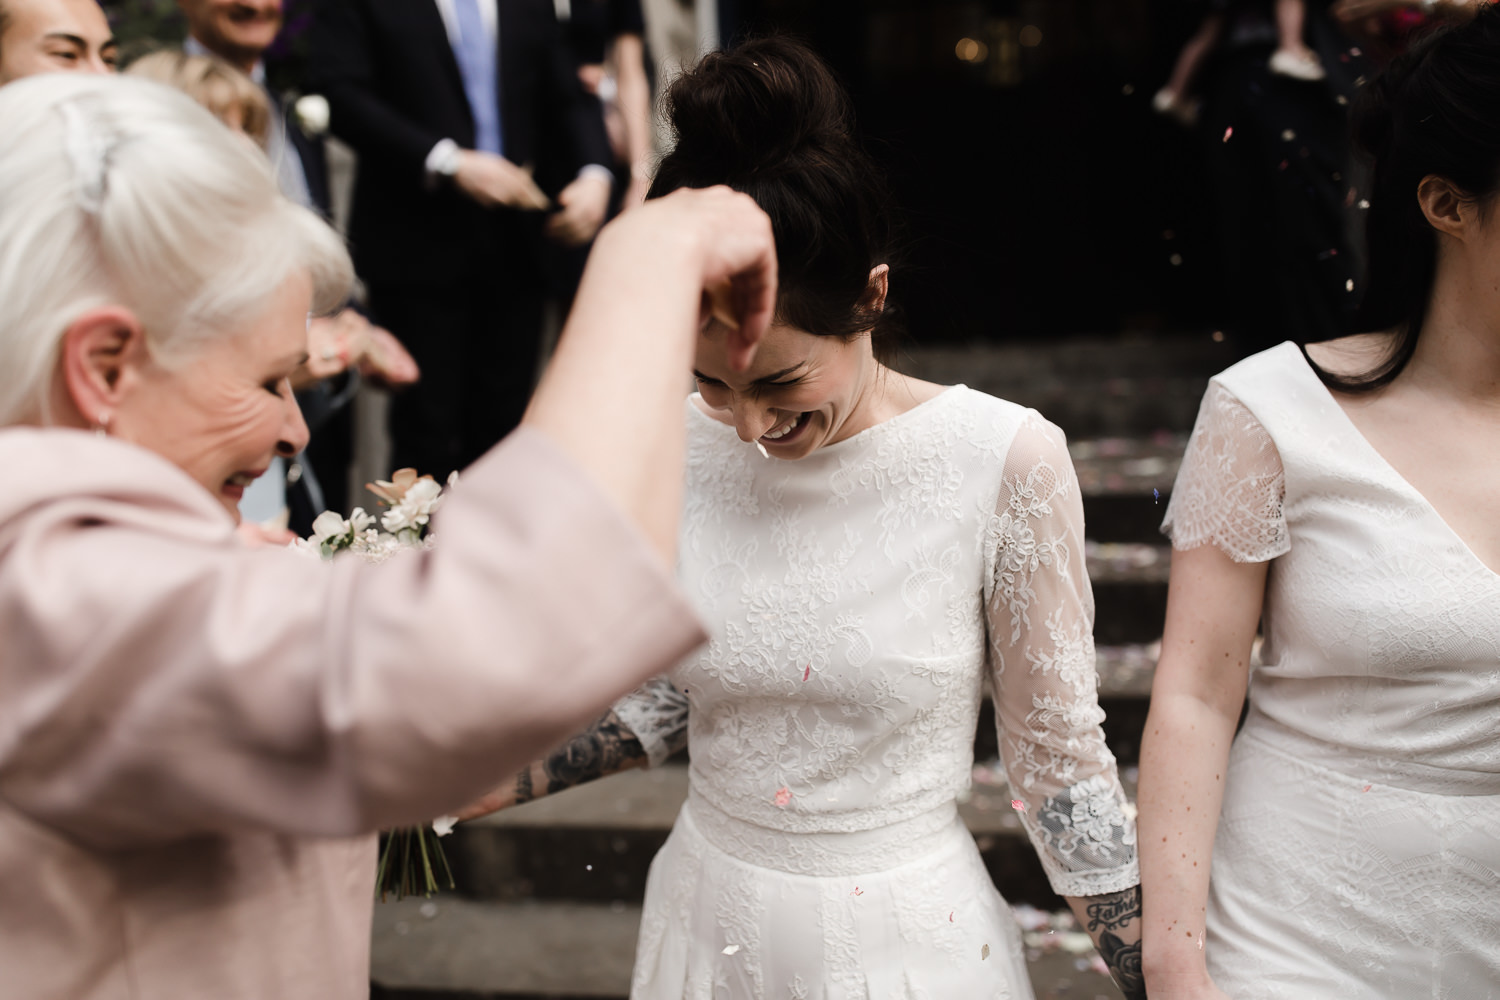 Spring_Somerset_House_London_Wedding_068.jpg